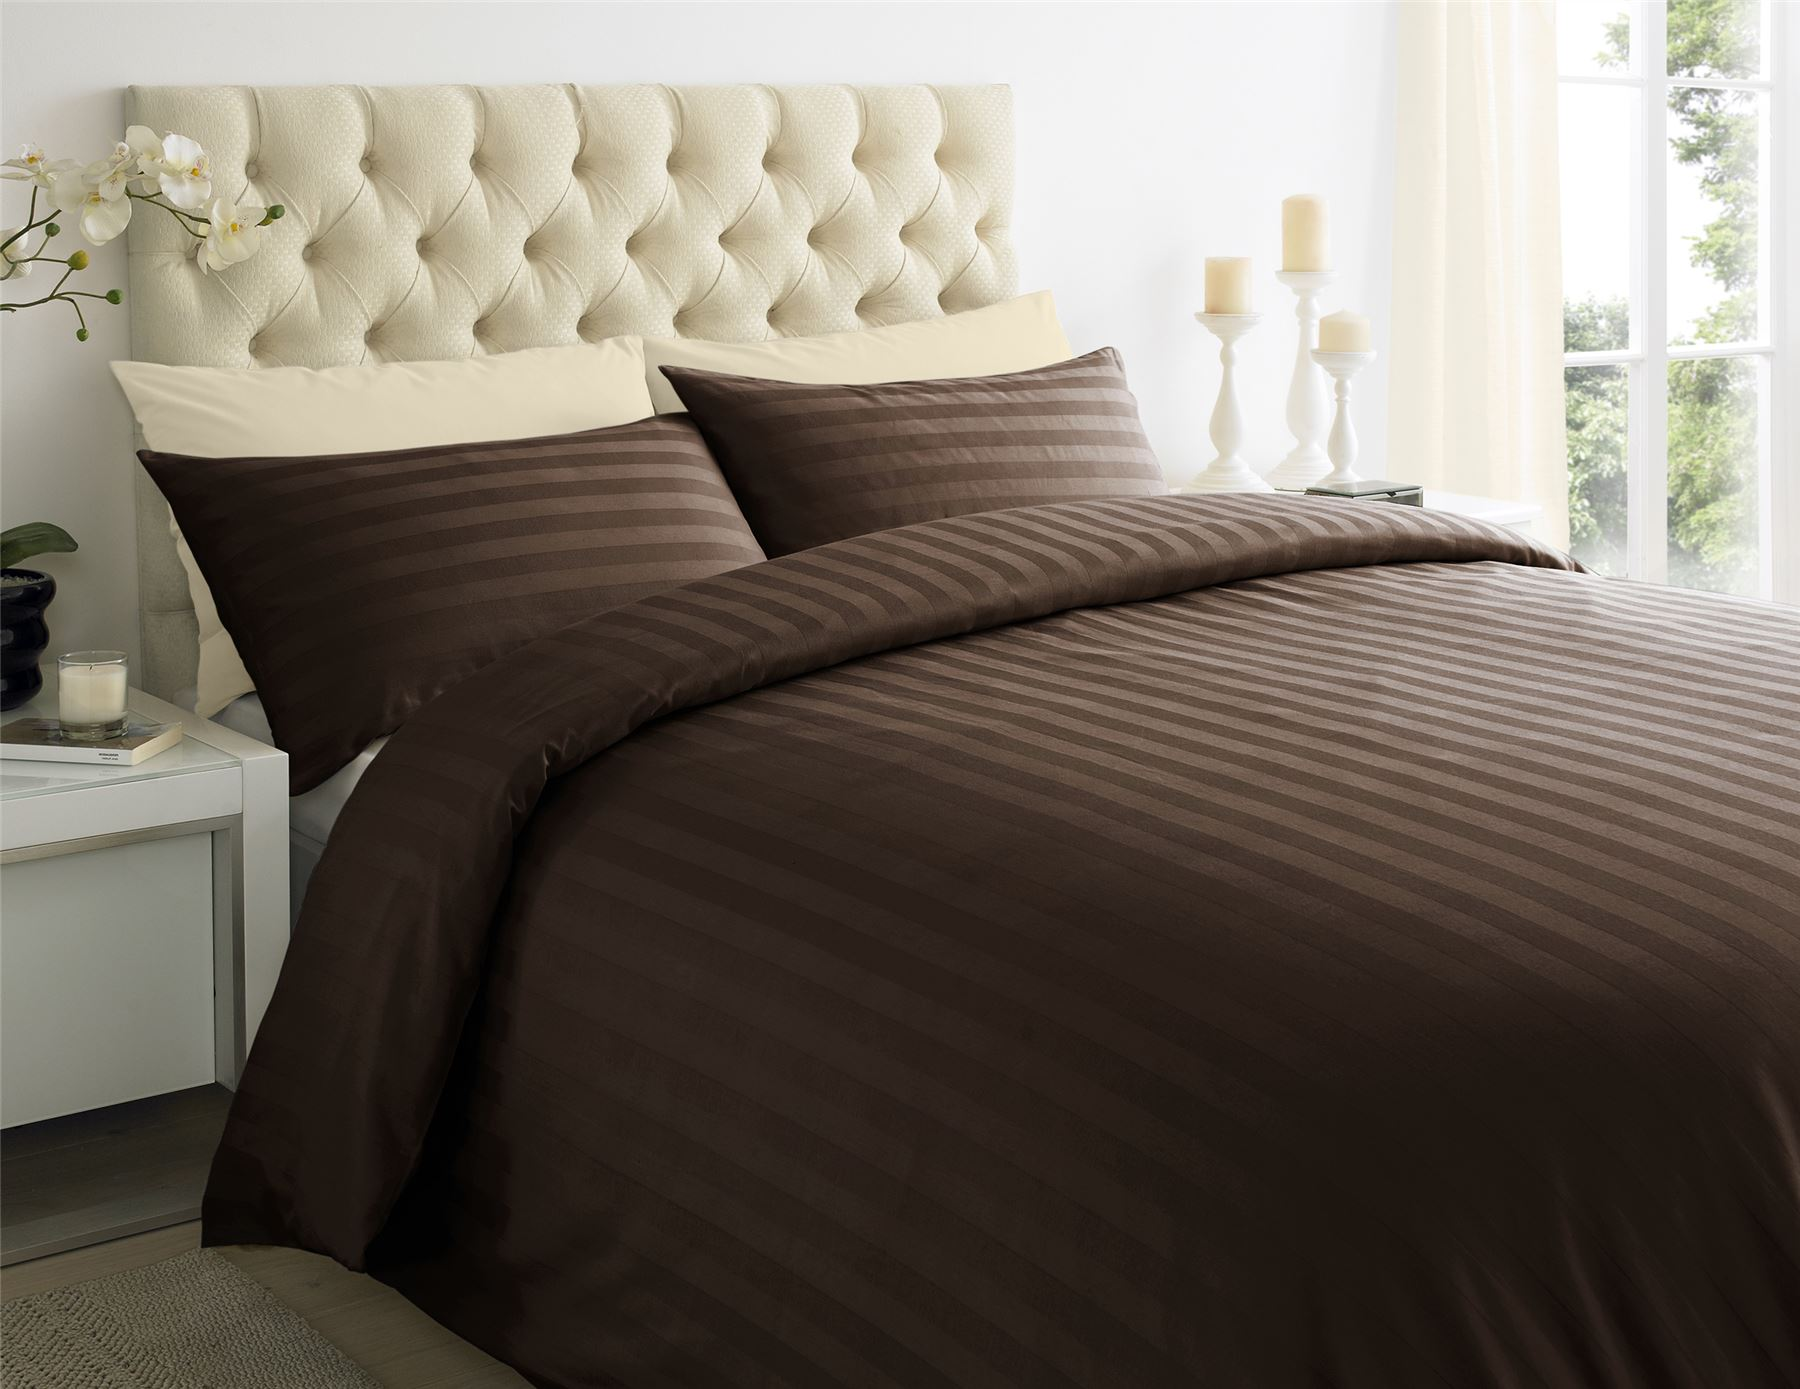 california brown trinity home duvet set com madison king amazon cover piece kitchen taupe park dp